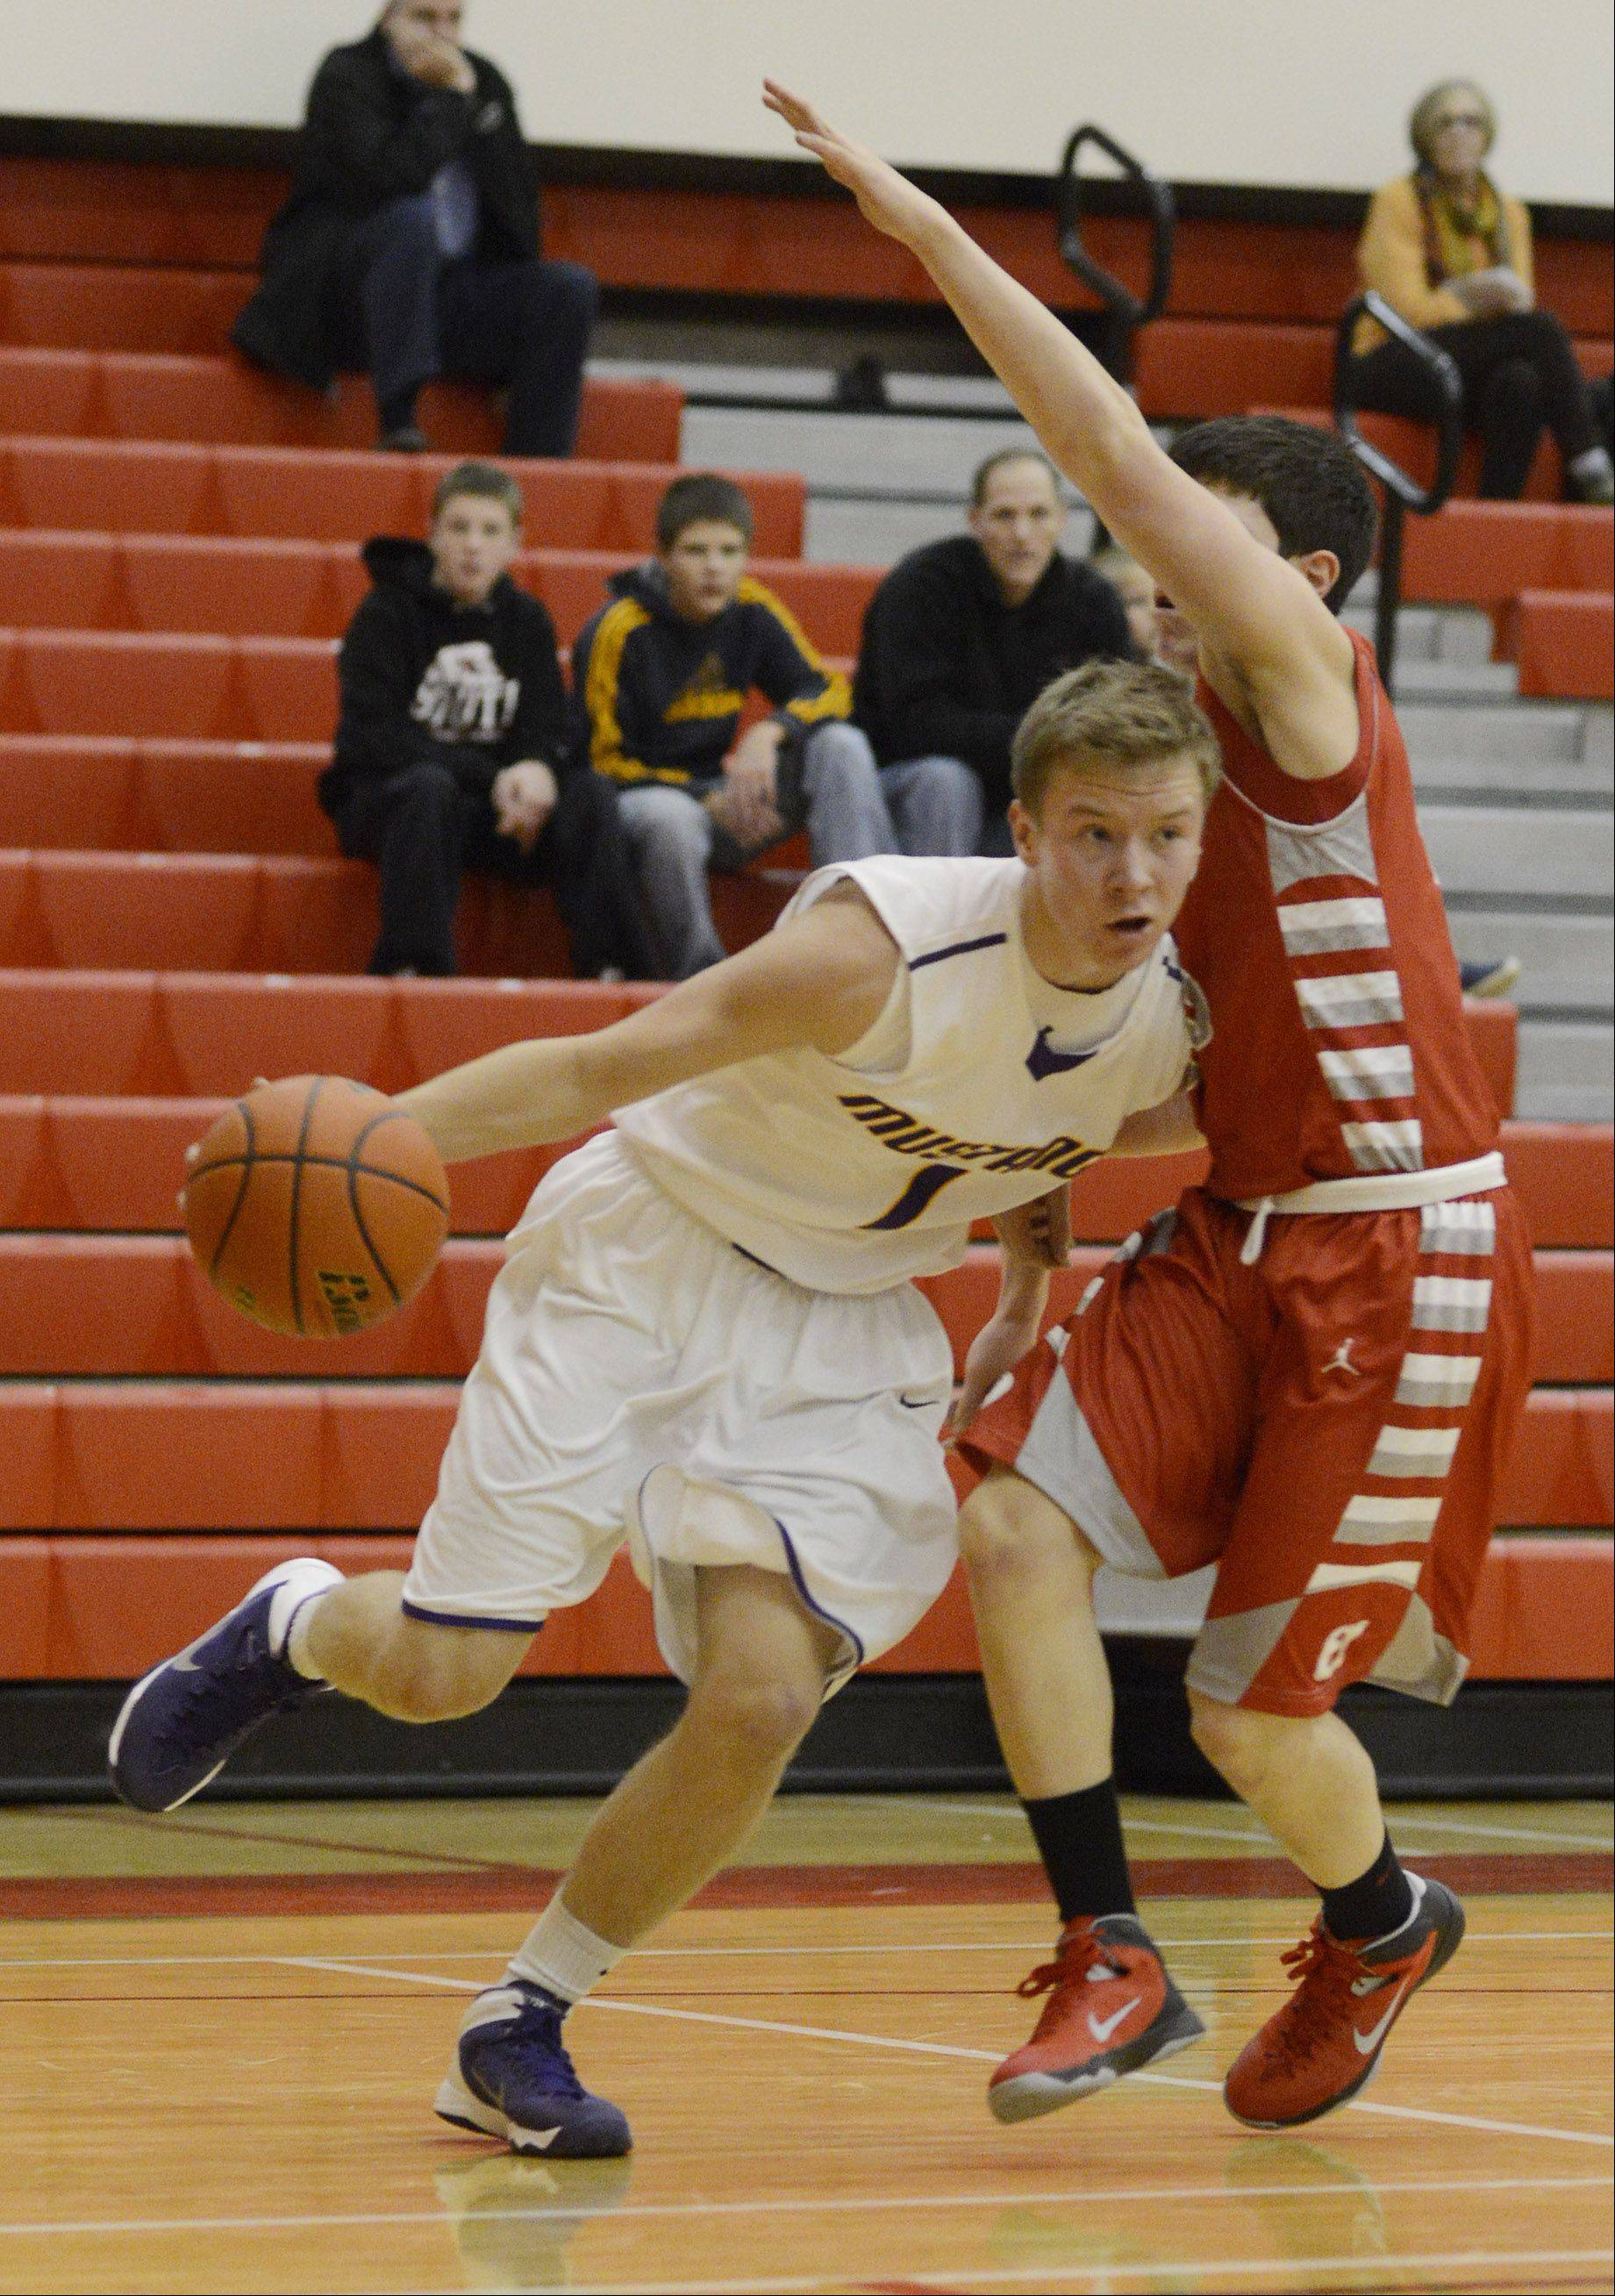 Rolling Meadows' Matt Wojcik drives against Deerfield's Sam Kuznetsky during Tuesday's game in Palatine.